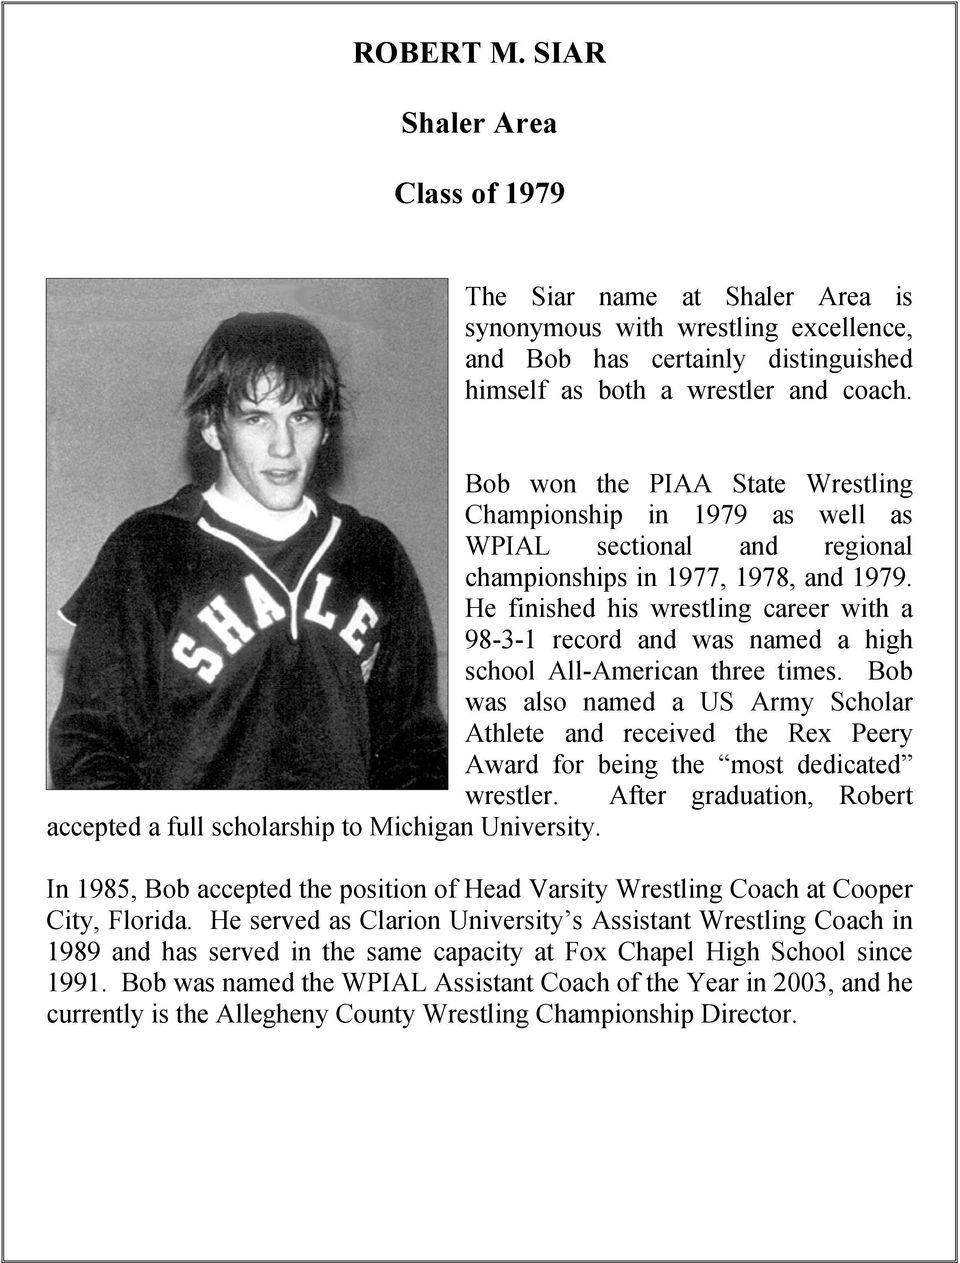 He finished his wrestling career with a 98-3-1 record and was named a high school All-American three times.